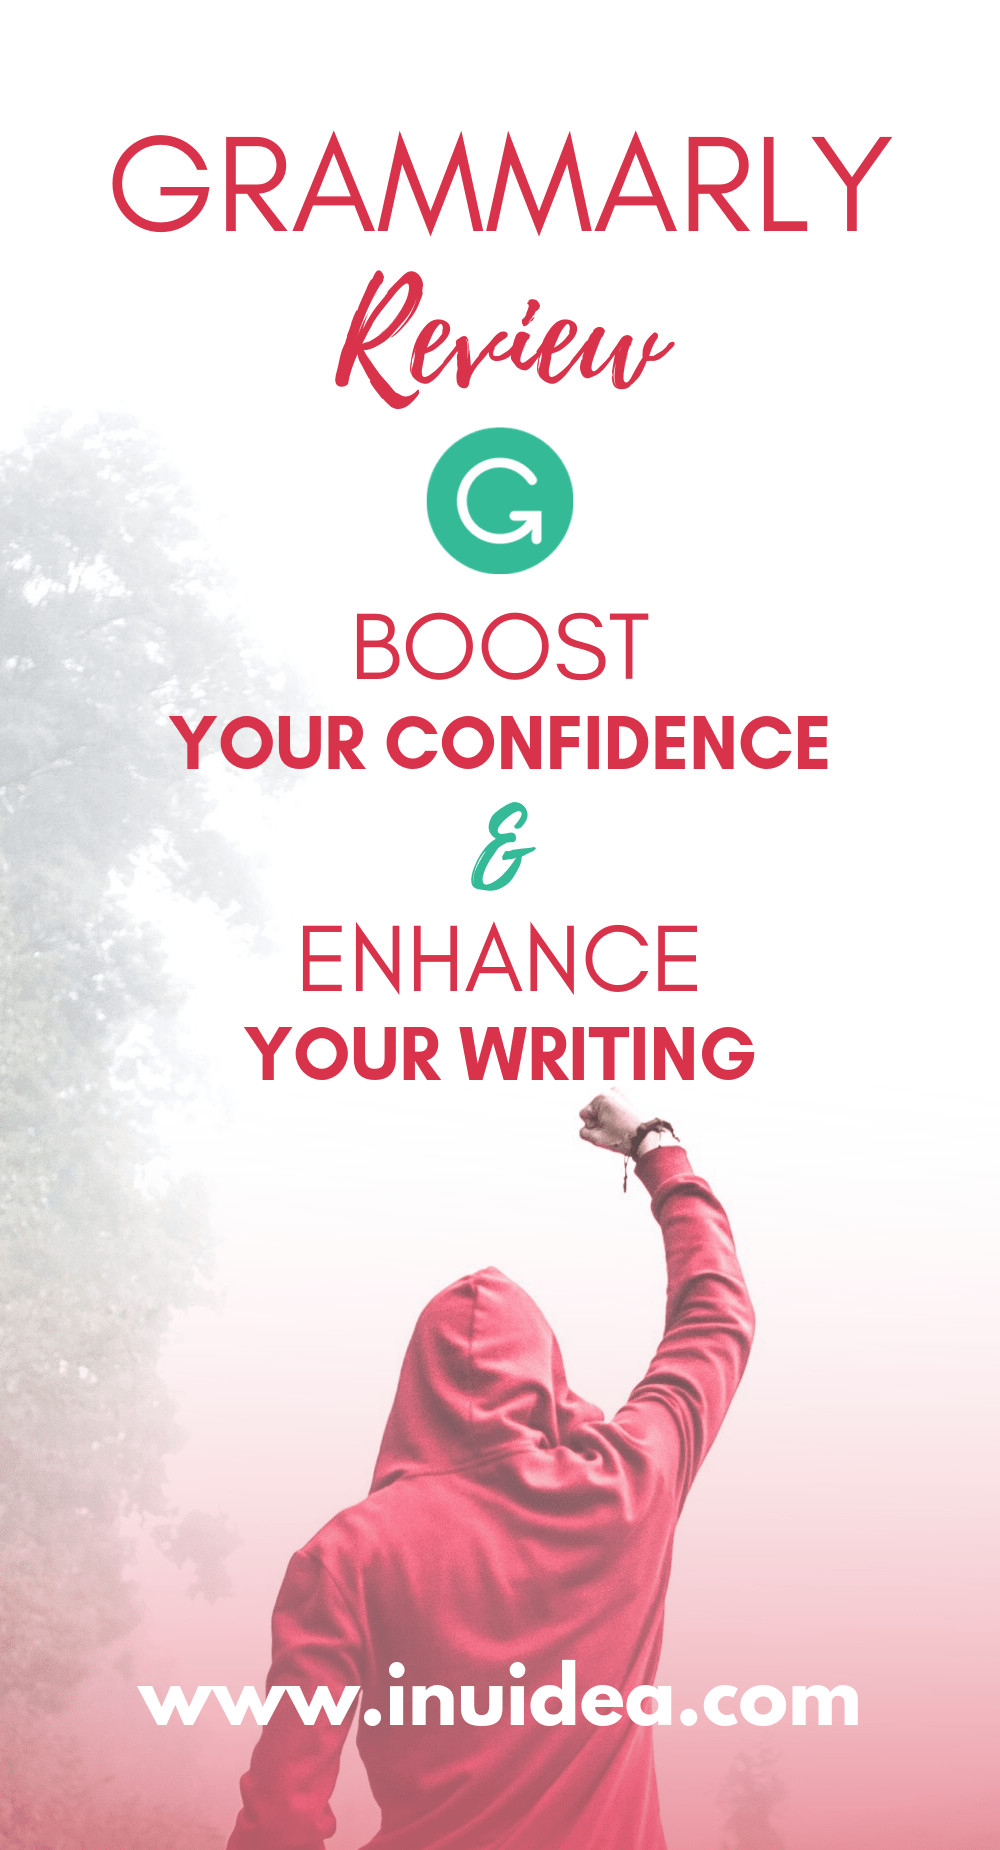 Buy Grammarly Deals Refurbished